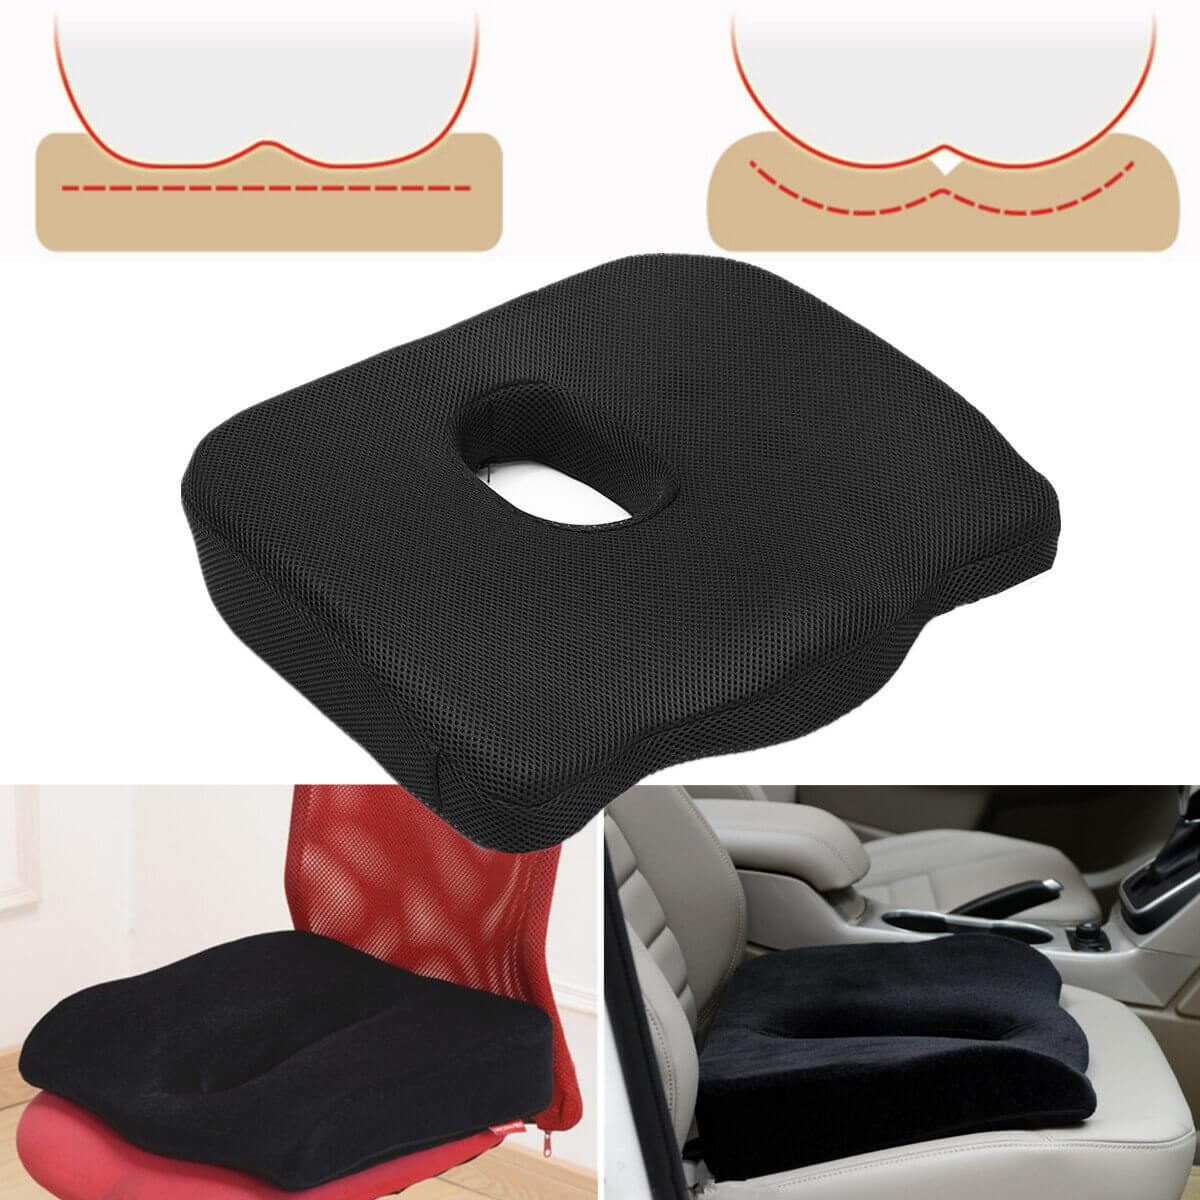 RelaxGel™ Coccyx Seat Cushion with Memory Foam for Car & Office Chair